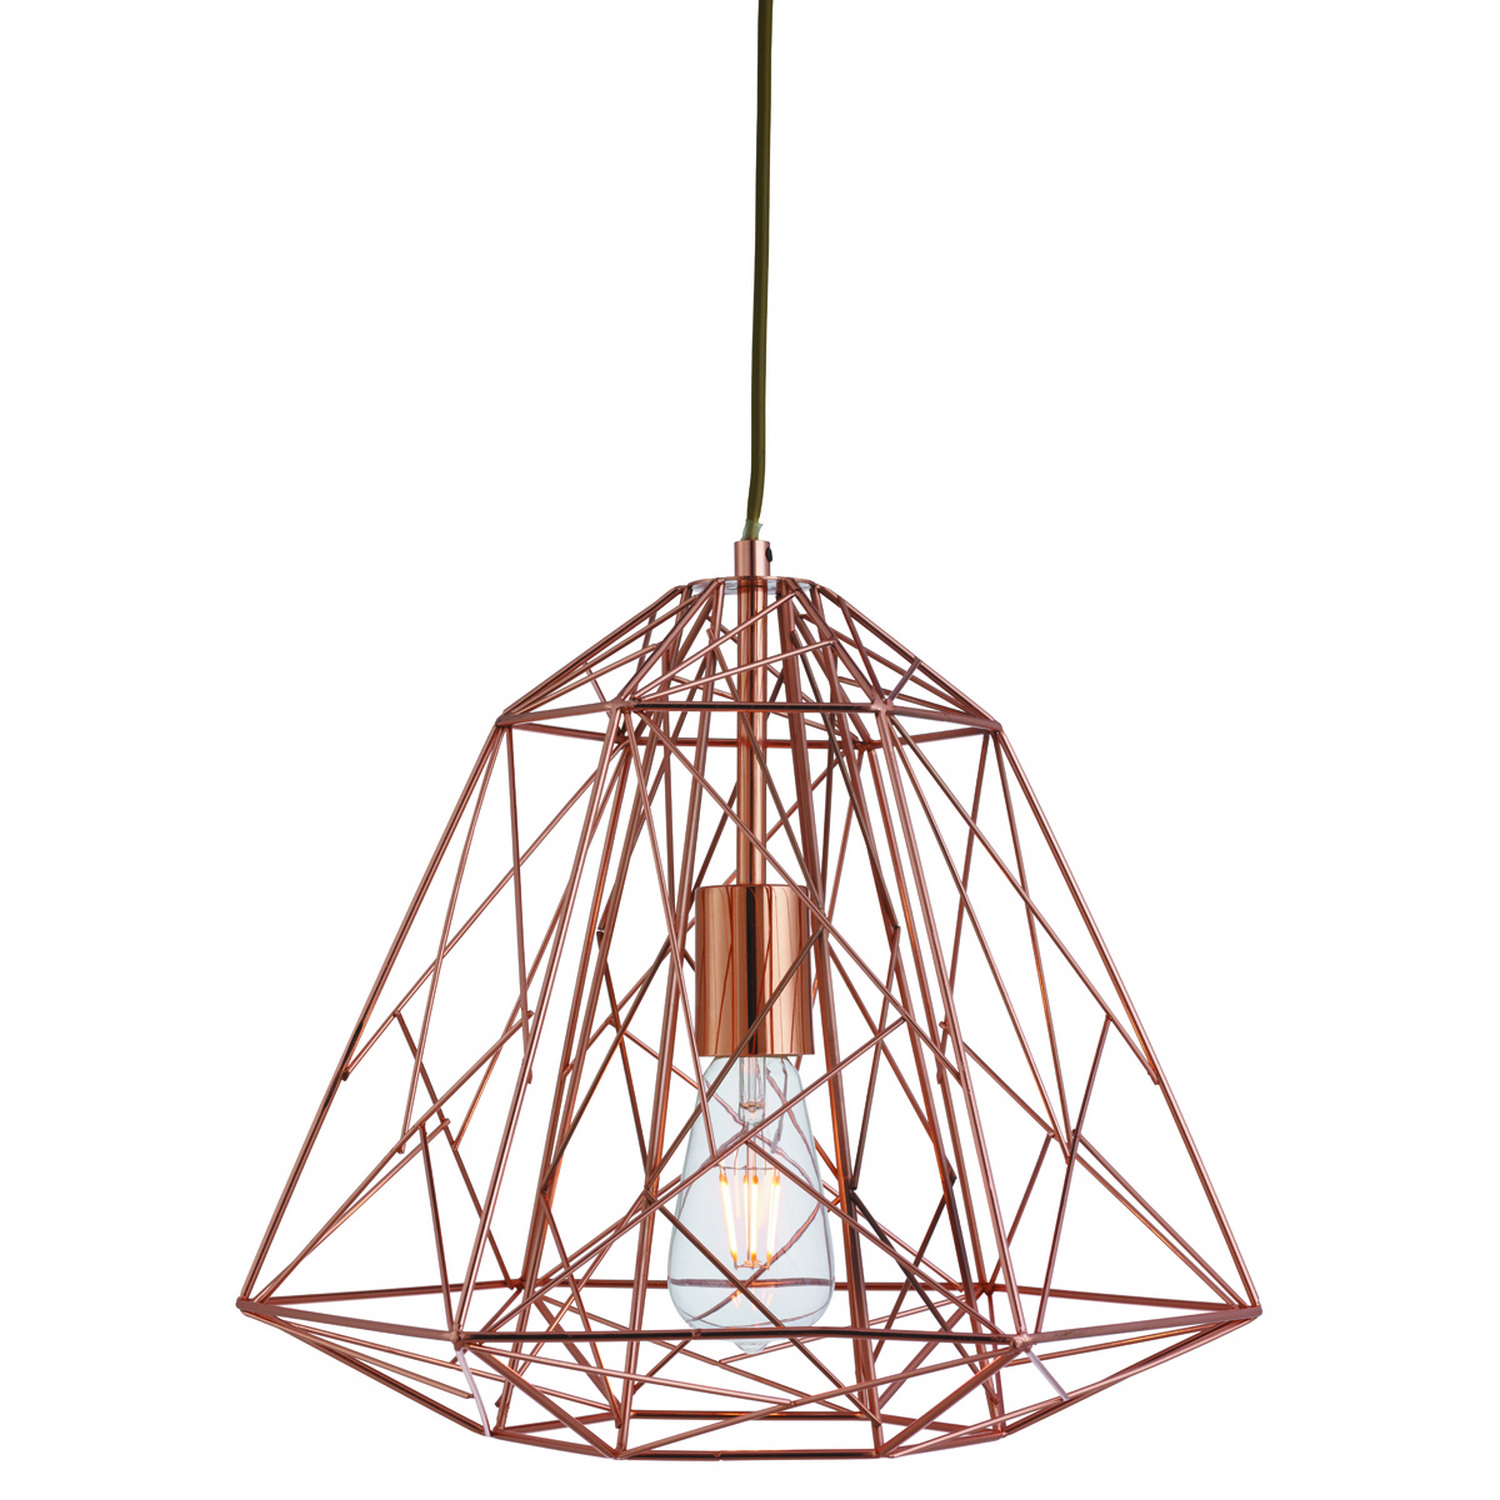 Copper Geometric Cage Frame Shade Ceiling Pendant Light